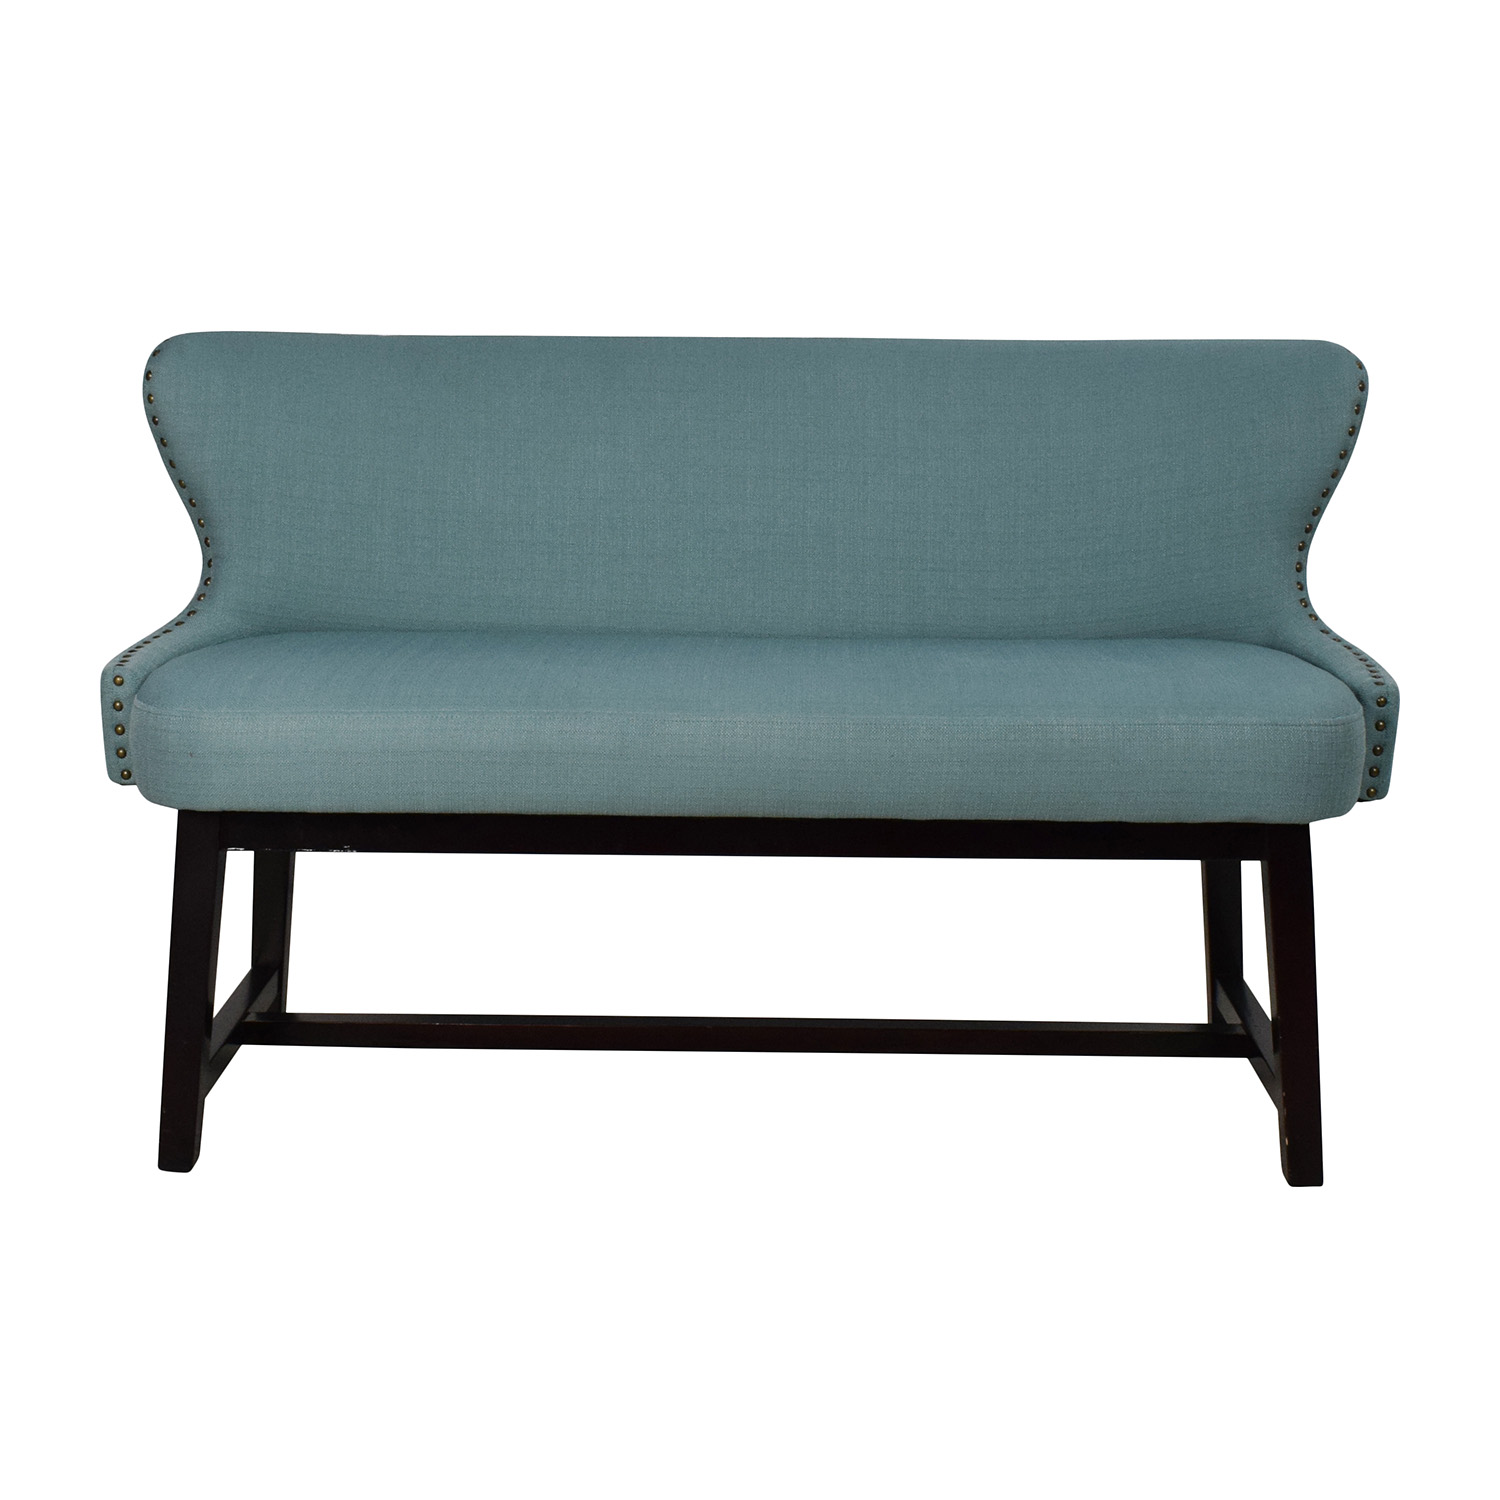 Home Goods Home Goods Upholstered Bench discount